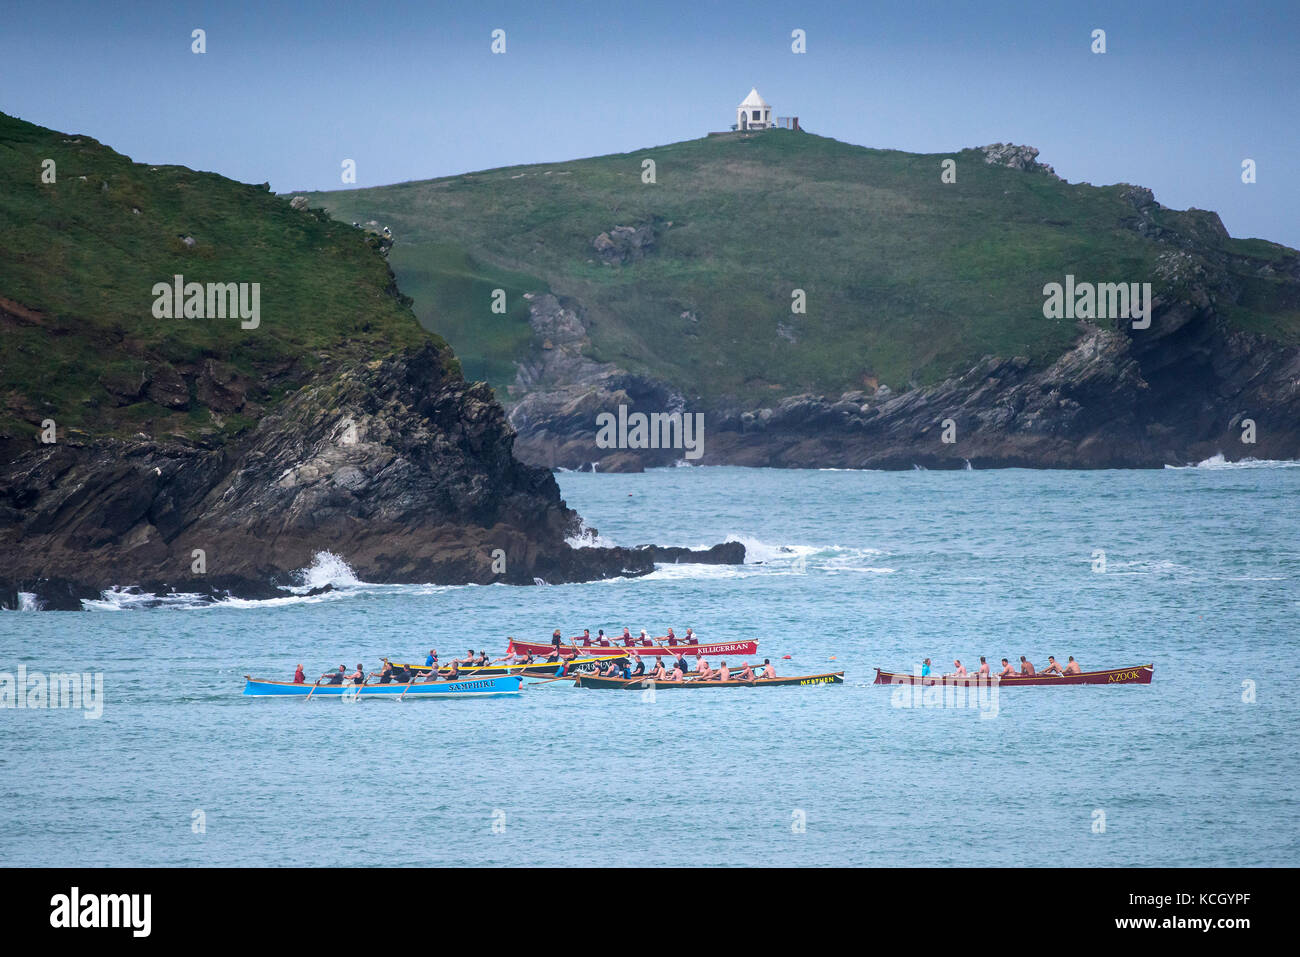 Gig racing - traditional Cornish Pilot Gigs racing off the coast of Newquay in Cornwall. - Stock Image